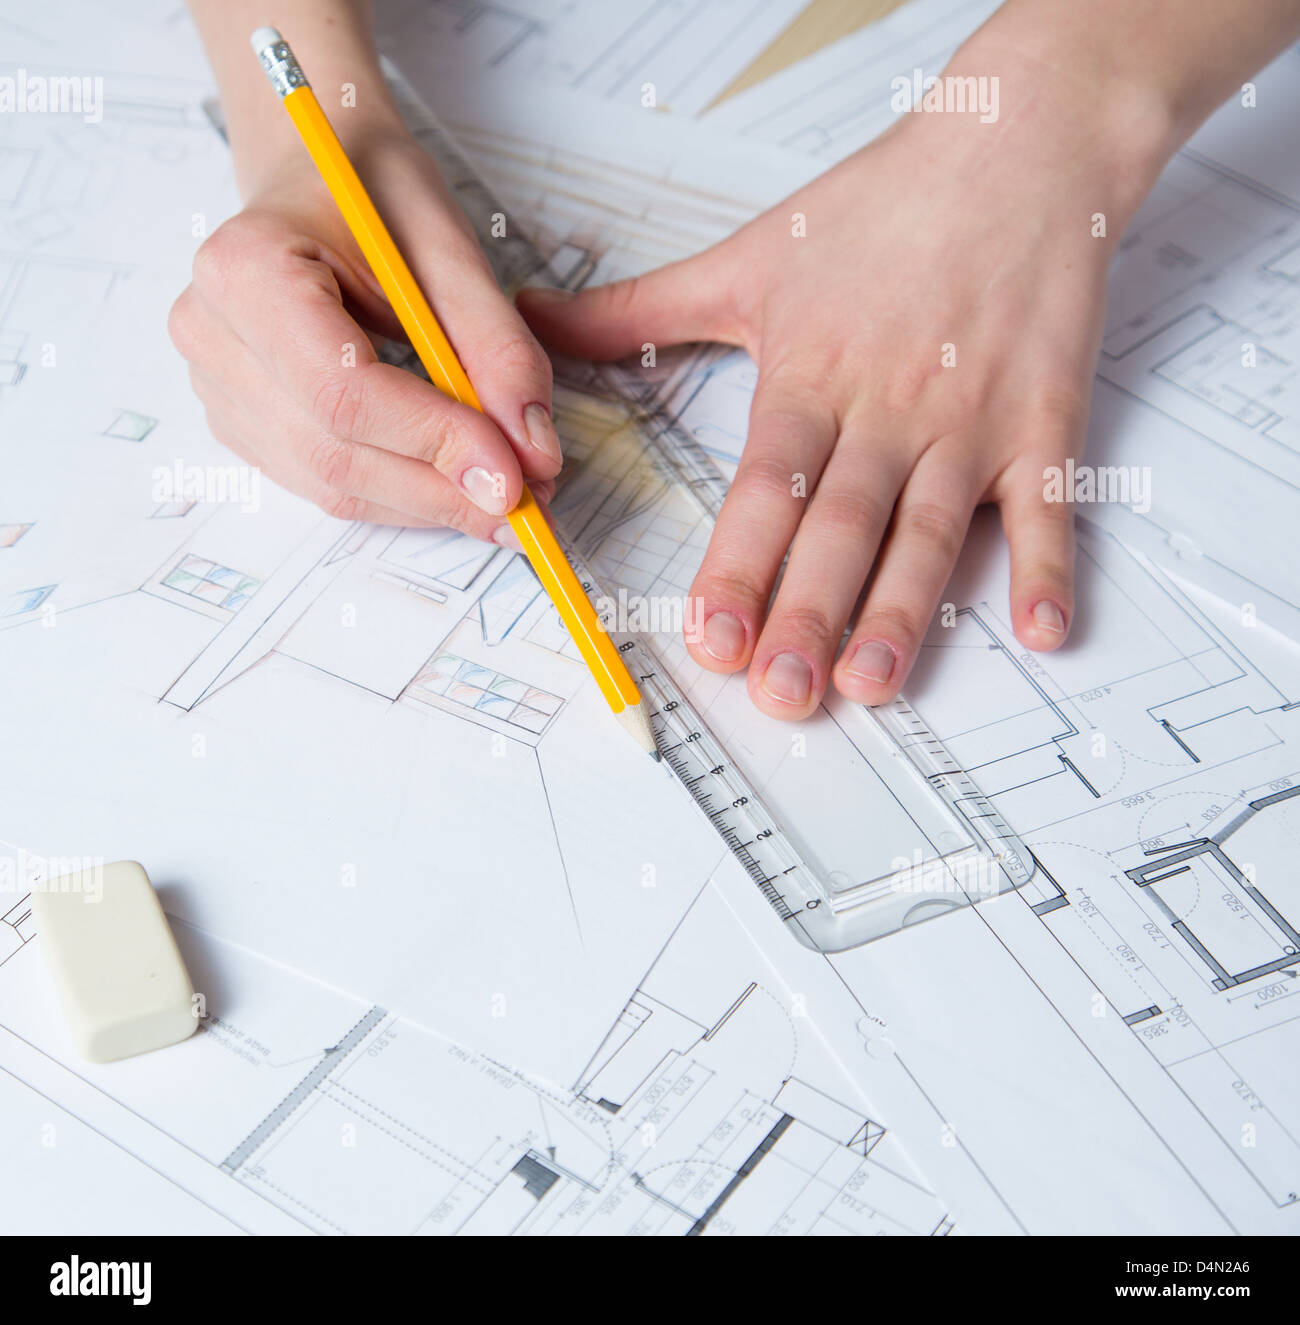 Architectural drawing pencils stock photos architectural - Hand drafting for interior design ...